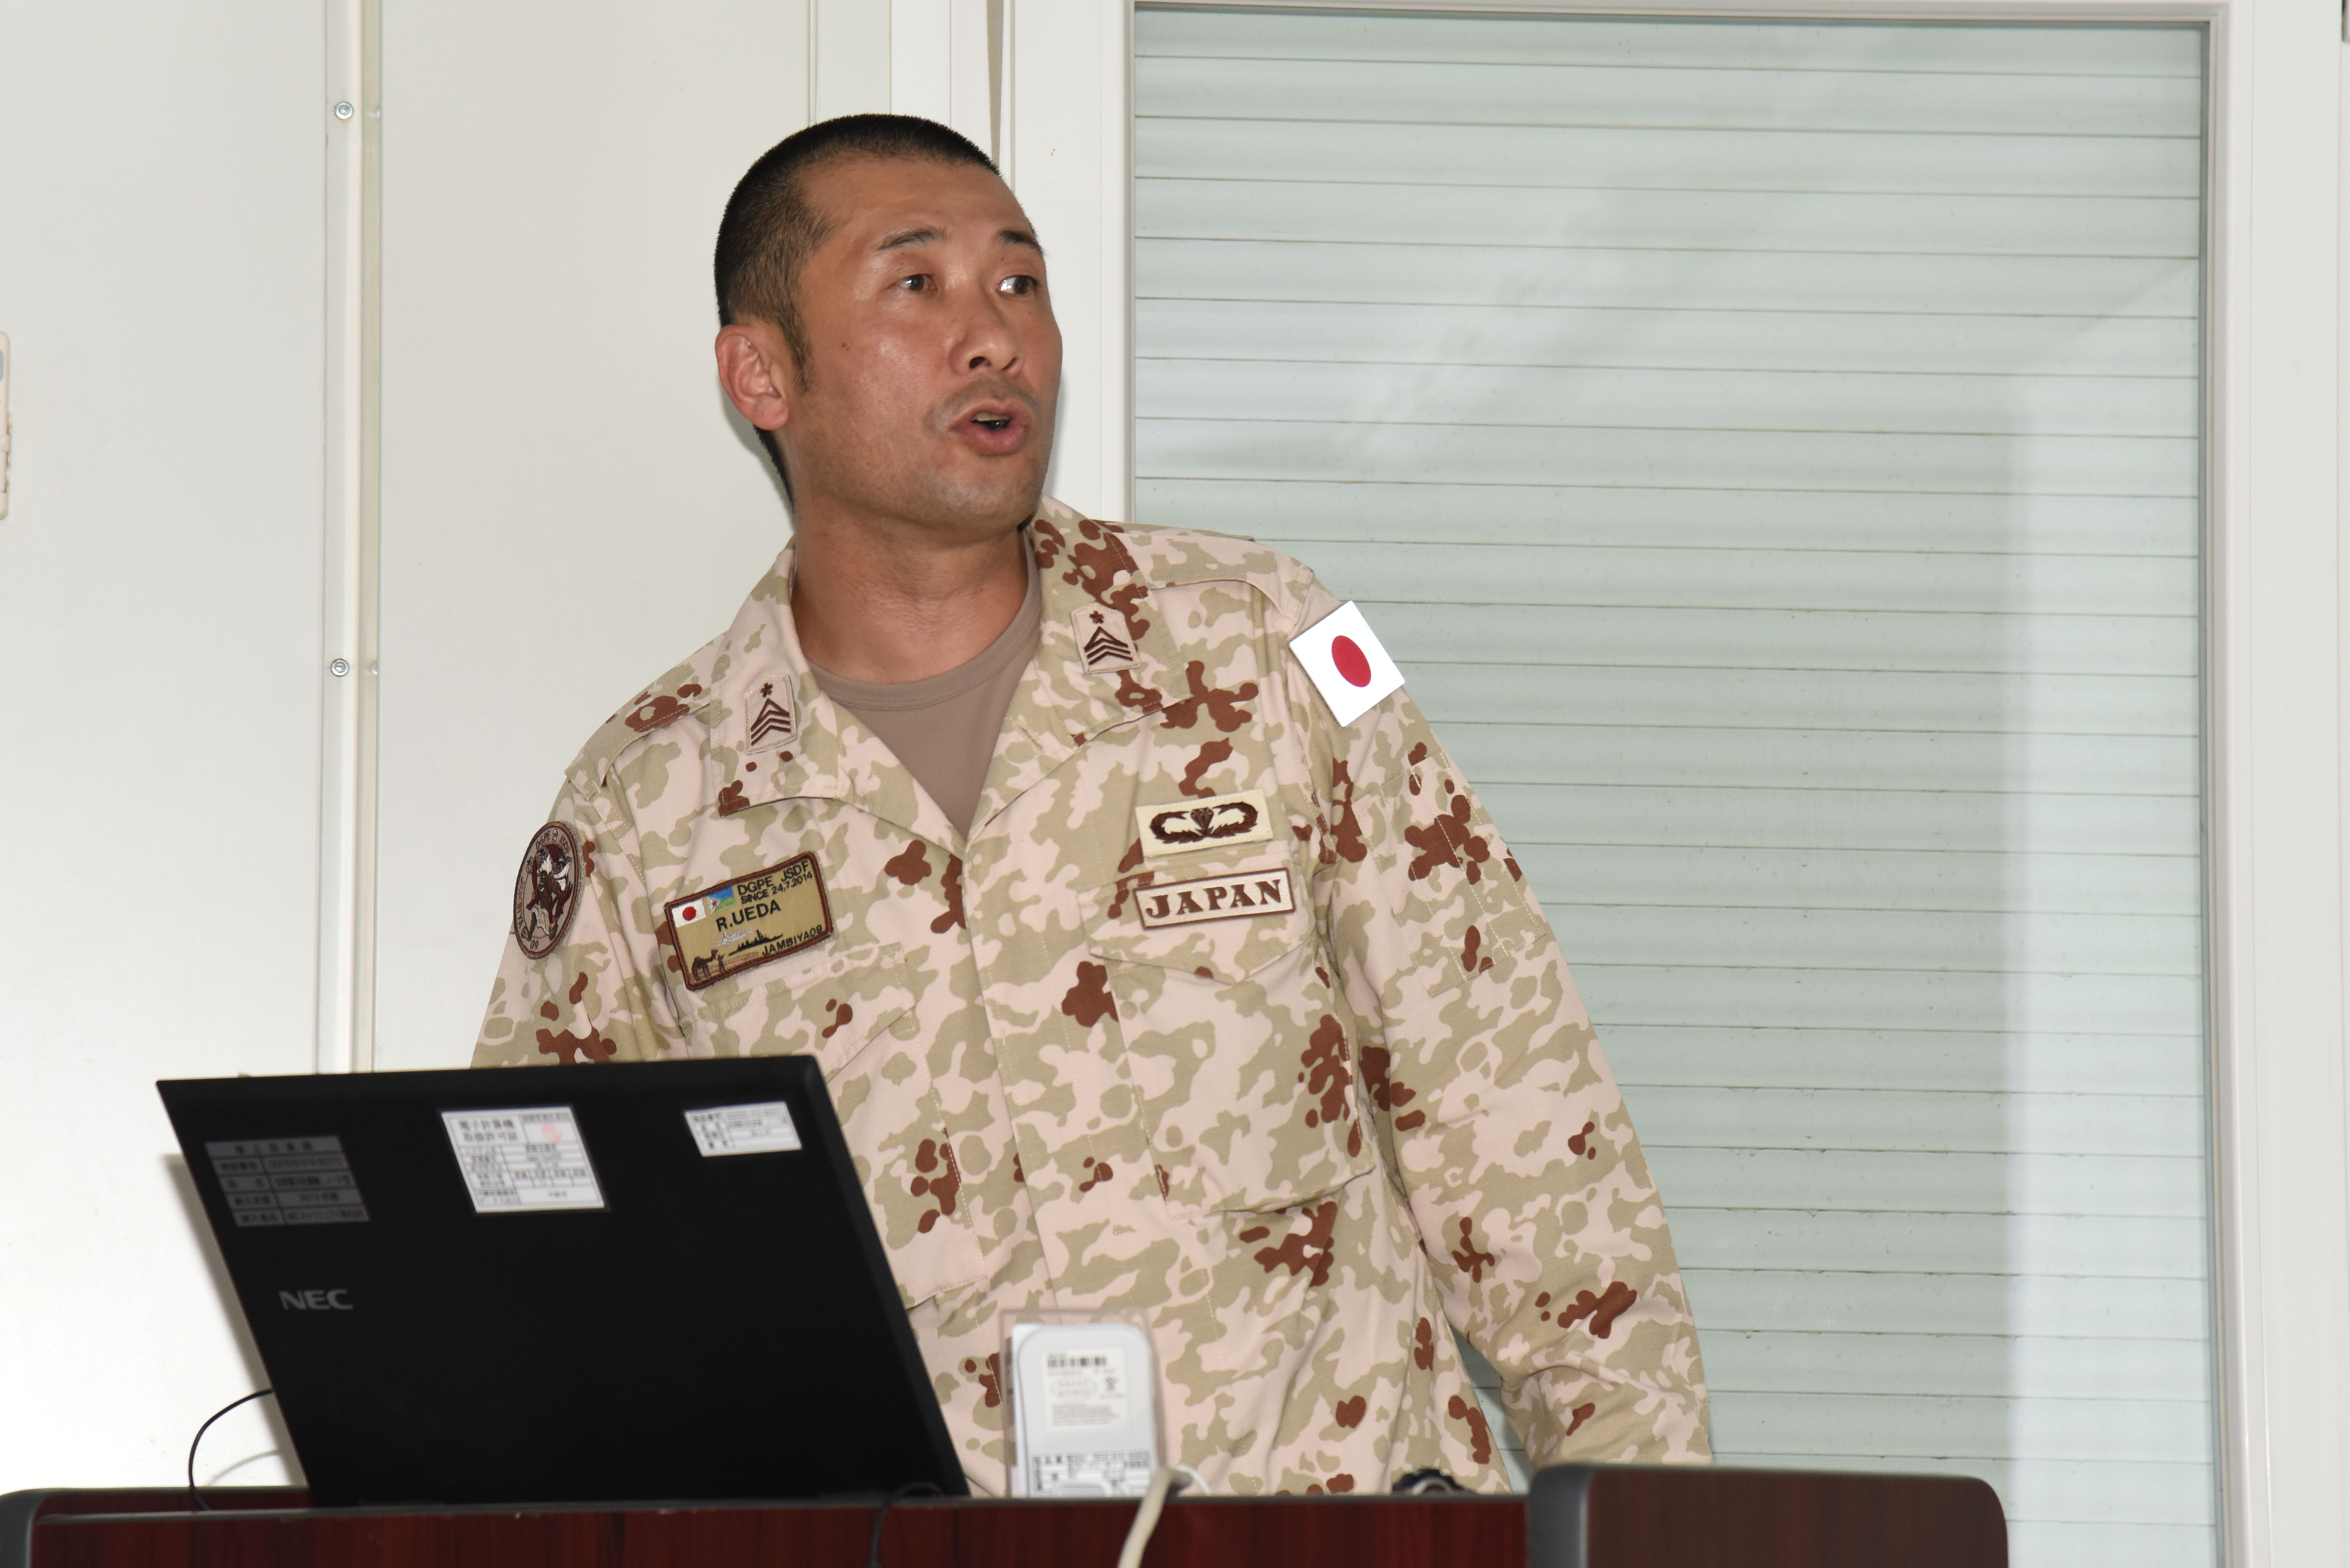 Japan Ground Self-Defense Force Command Sgt. Maj. Ryuichi Ueda introduces the basics of Japanese culture to attendees of the Joint Forces Senior Enlisted Professional Development Course at the Japanese base in Djibouti, Nov. 24, 2015. Military members from the U.S. and Djibouti learned about Japan's location, climate, history, and unique cultural customs. (U.S. Air Force photo by Staff Sgt. Victoria Sneed)